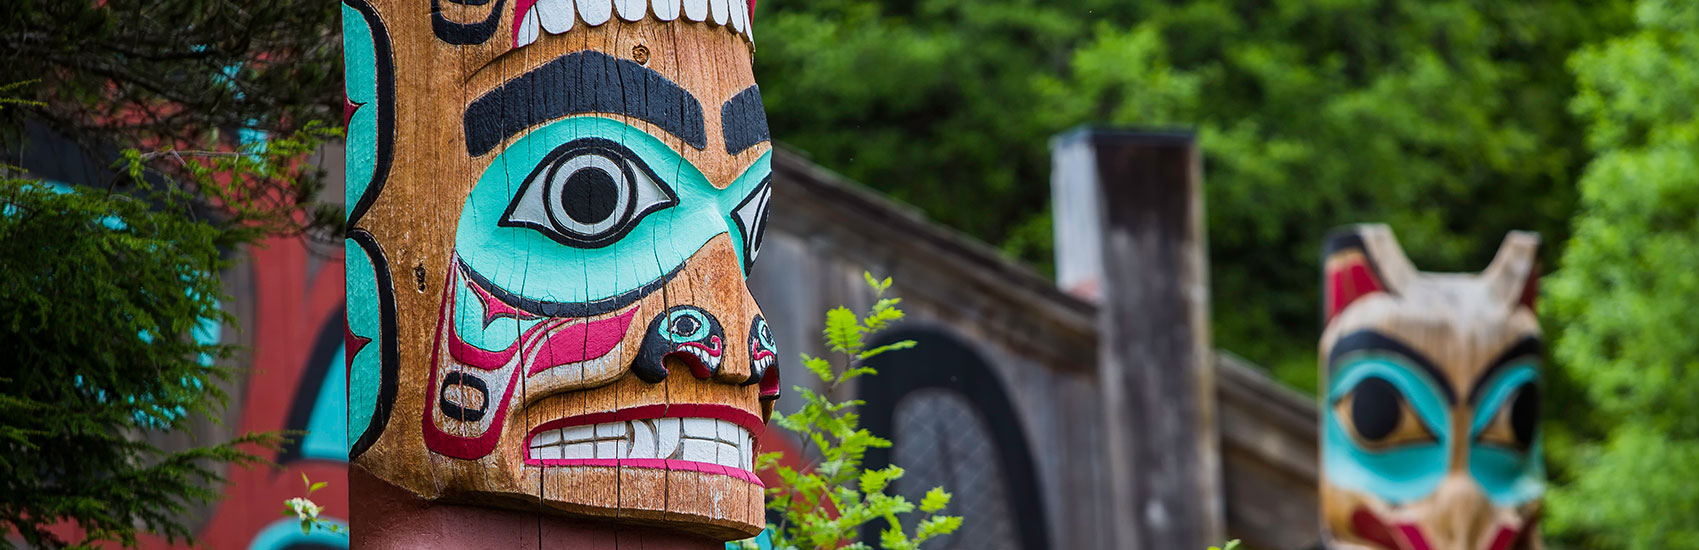 Limited Time Offer to Alaska with Holland America 5